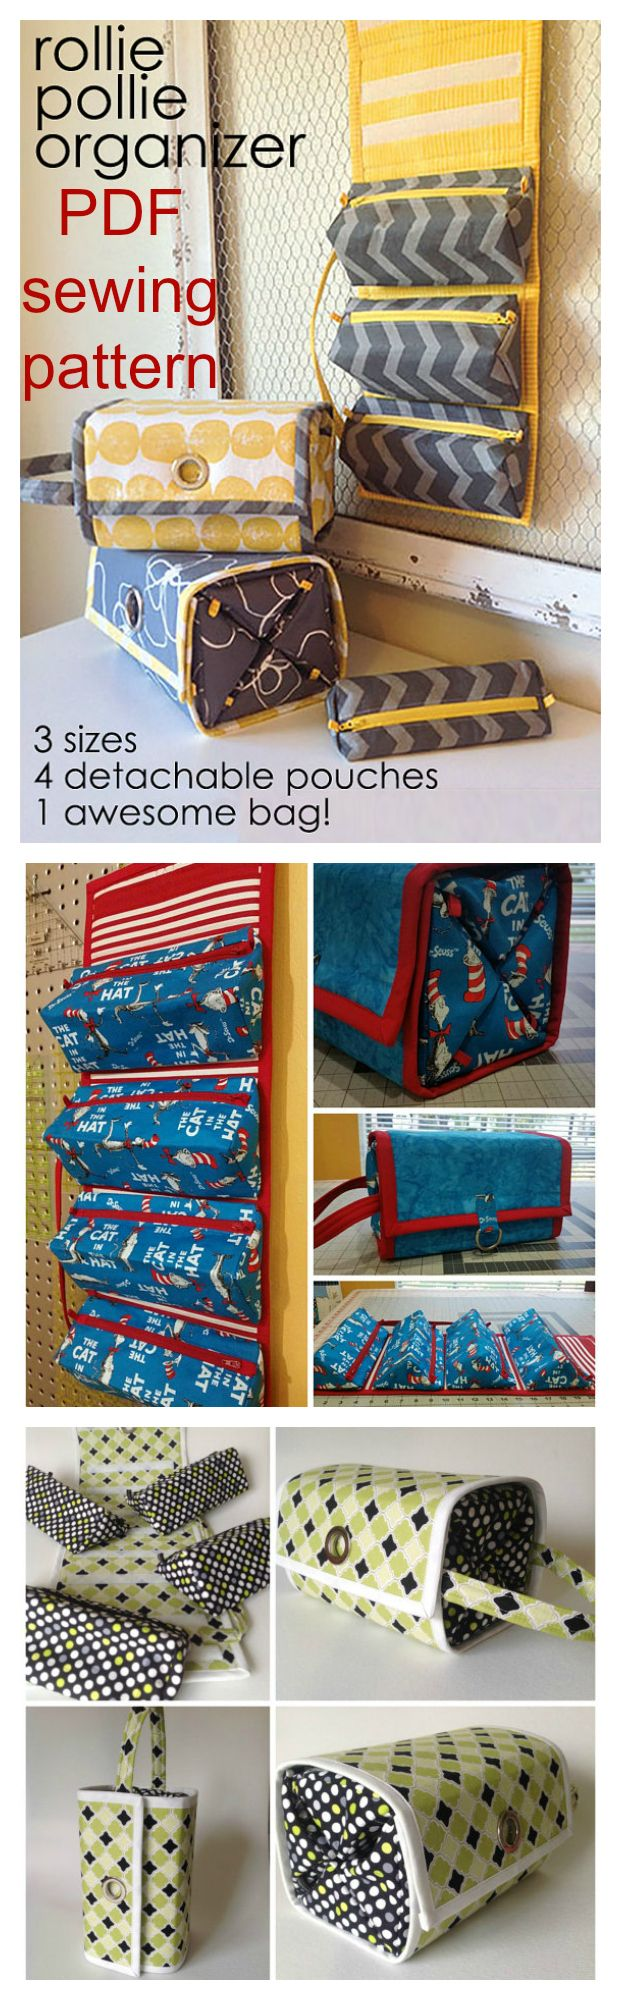 Downloadable pdf sewing pattern for The Rollie Pollie Organizer.